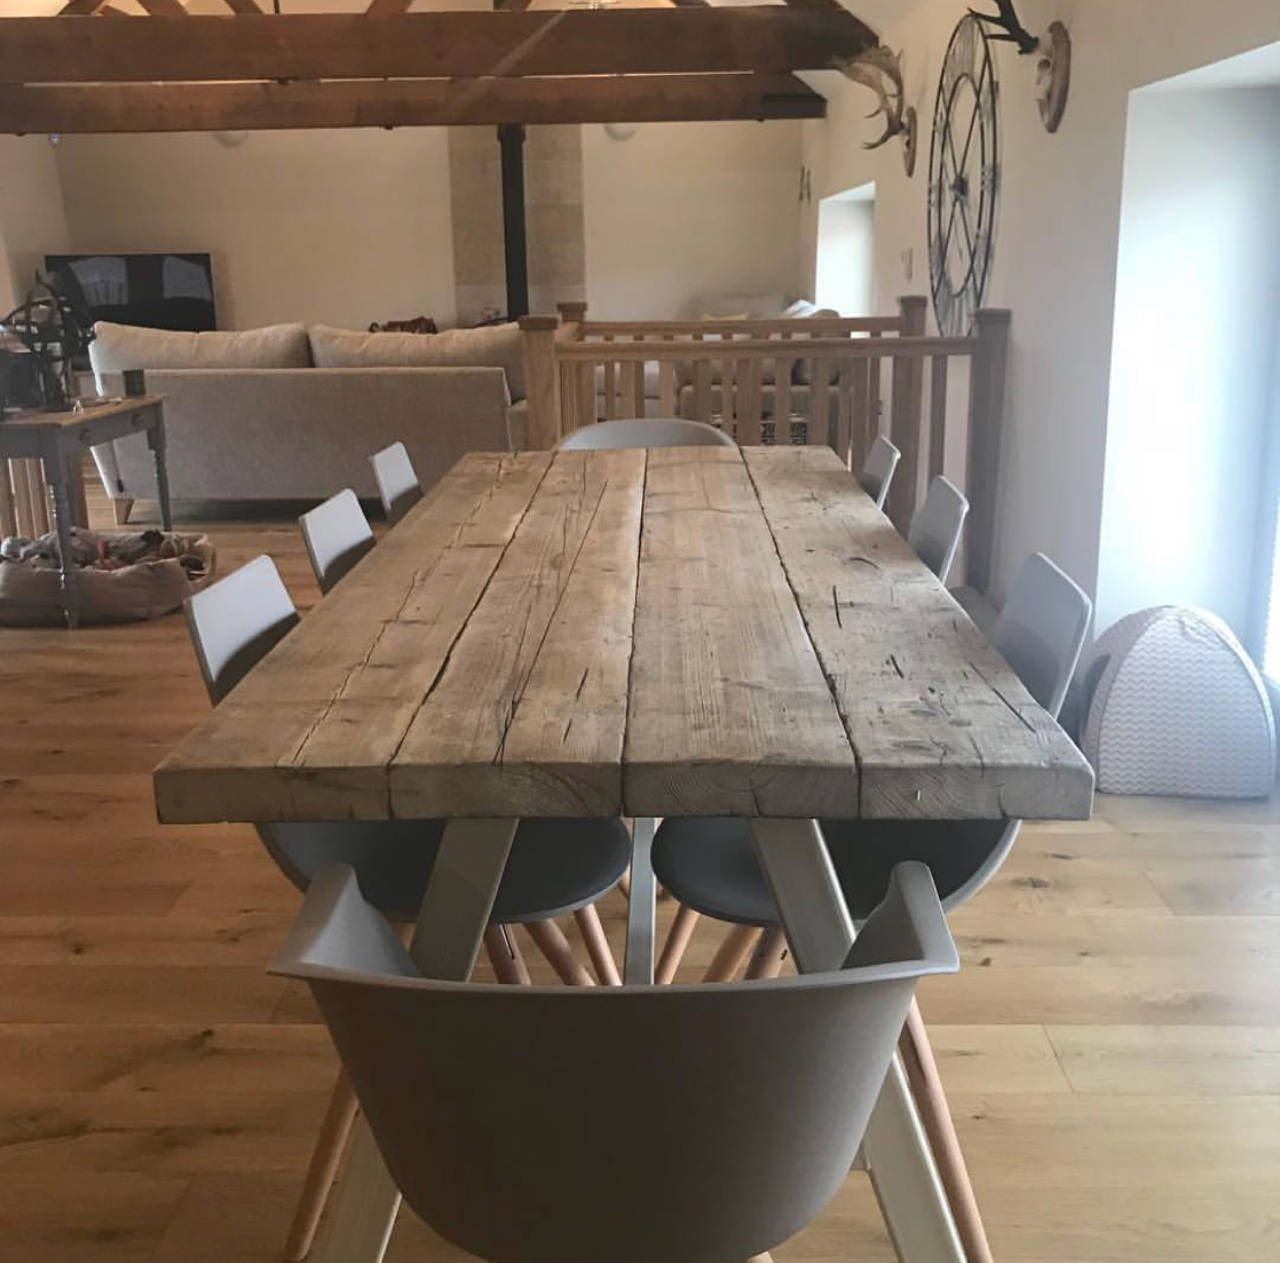 Reclaimed Industrial Chic 10 12 Seater Dining Table Bar Cafe Restaurant Furniture Steel Solid Wood Metal Made To Measure 473 8 Seater Dining Table 12 Seater Dining Table Metal Dining Table